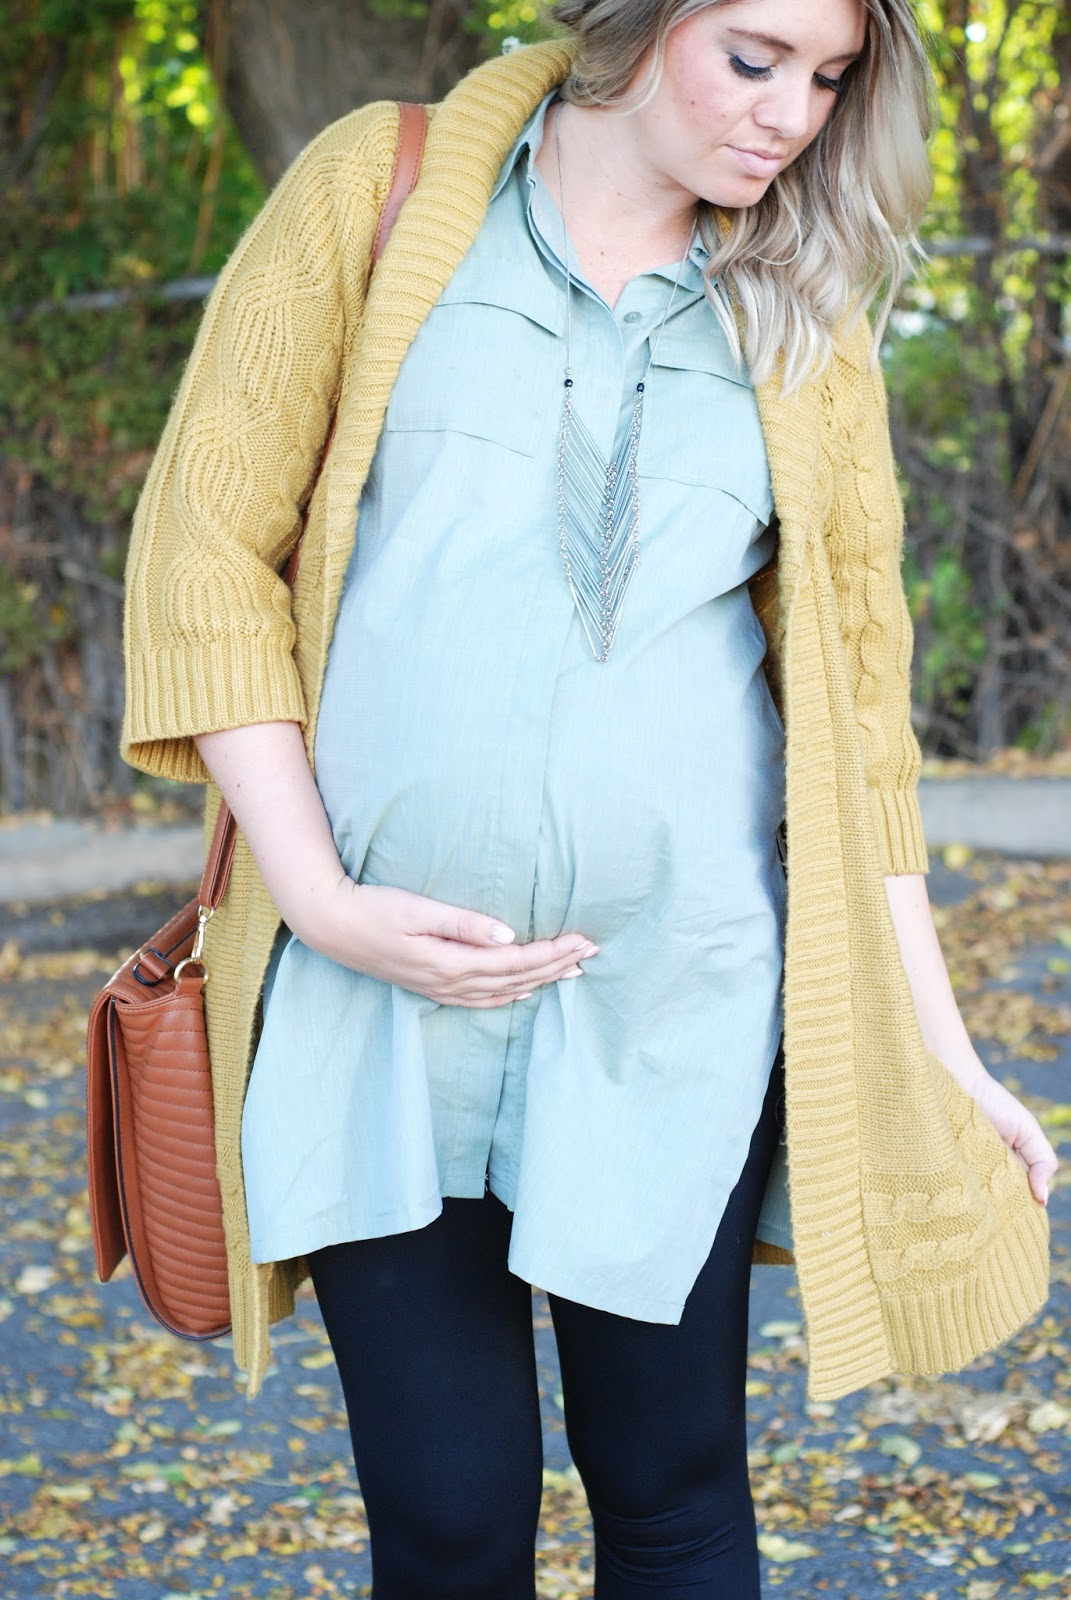 Fashion Bloggers The Red Closet Diary Yellow and Blue Pregnancy Maternity Clothes Apparel